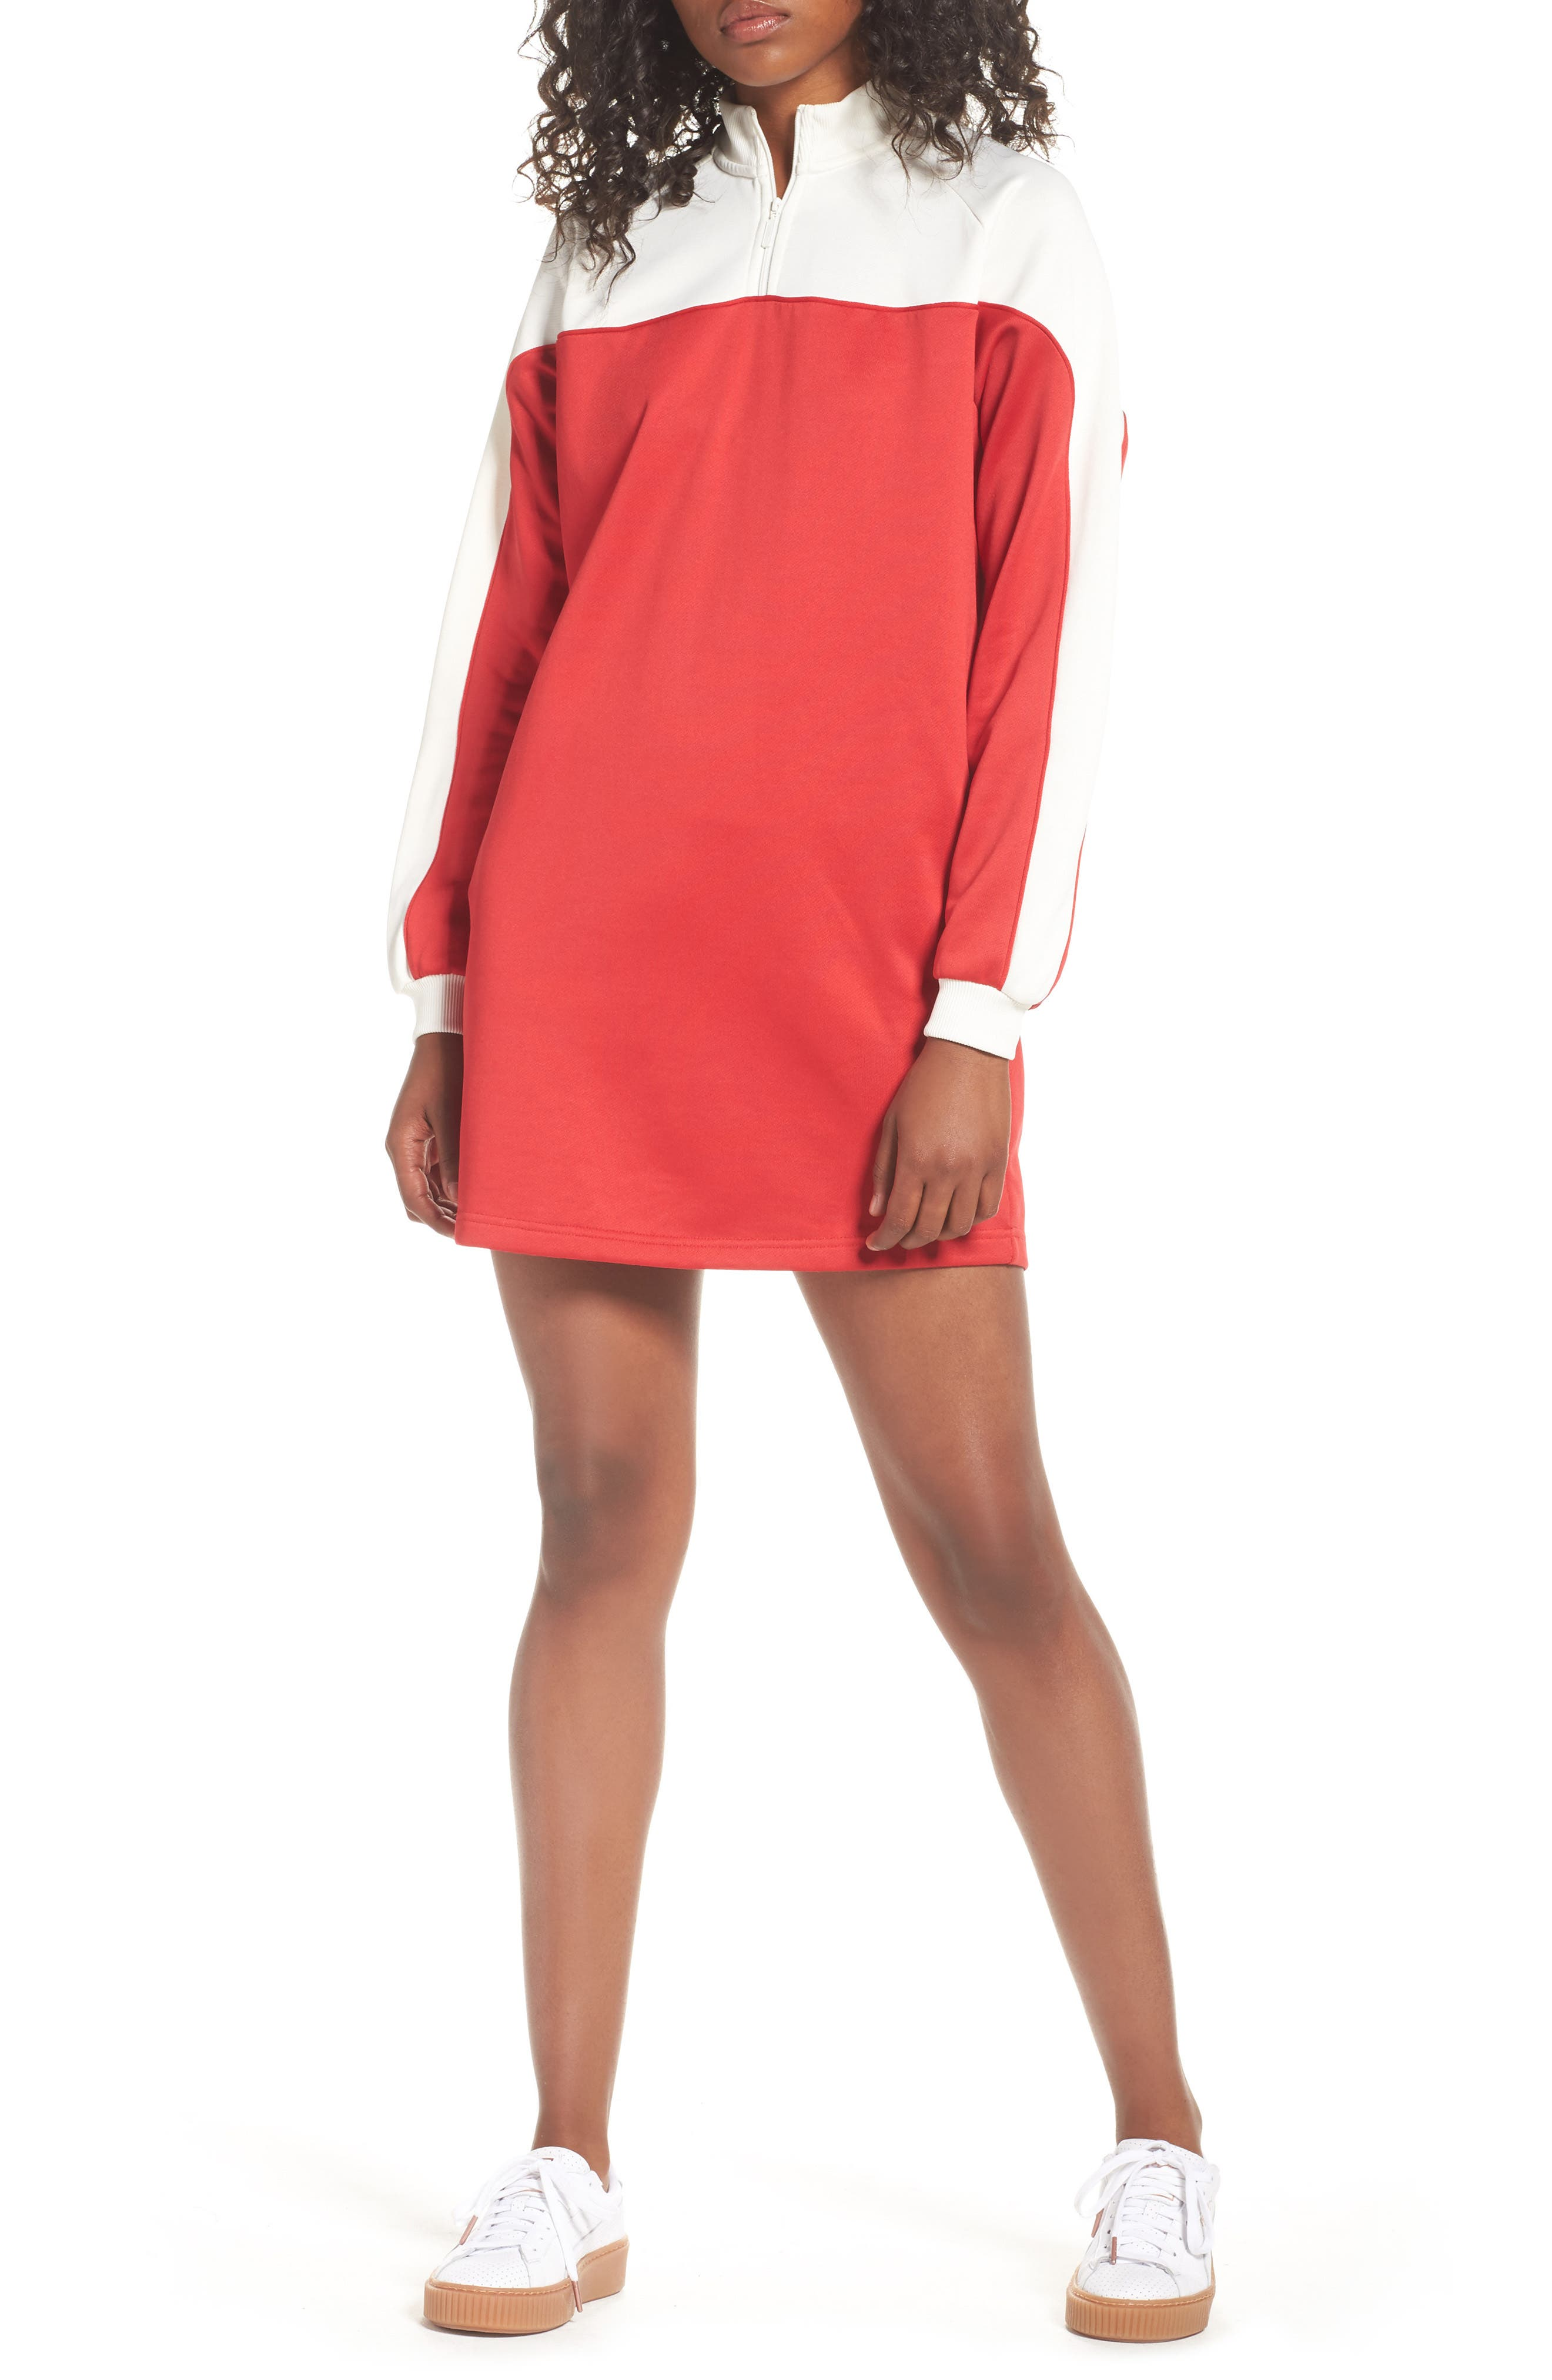 PUMA Quarter-ZIp Colorblock Dress